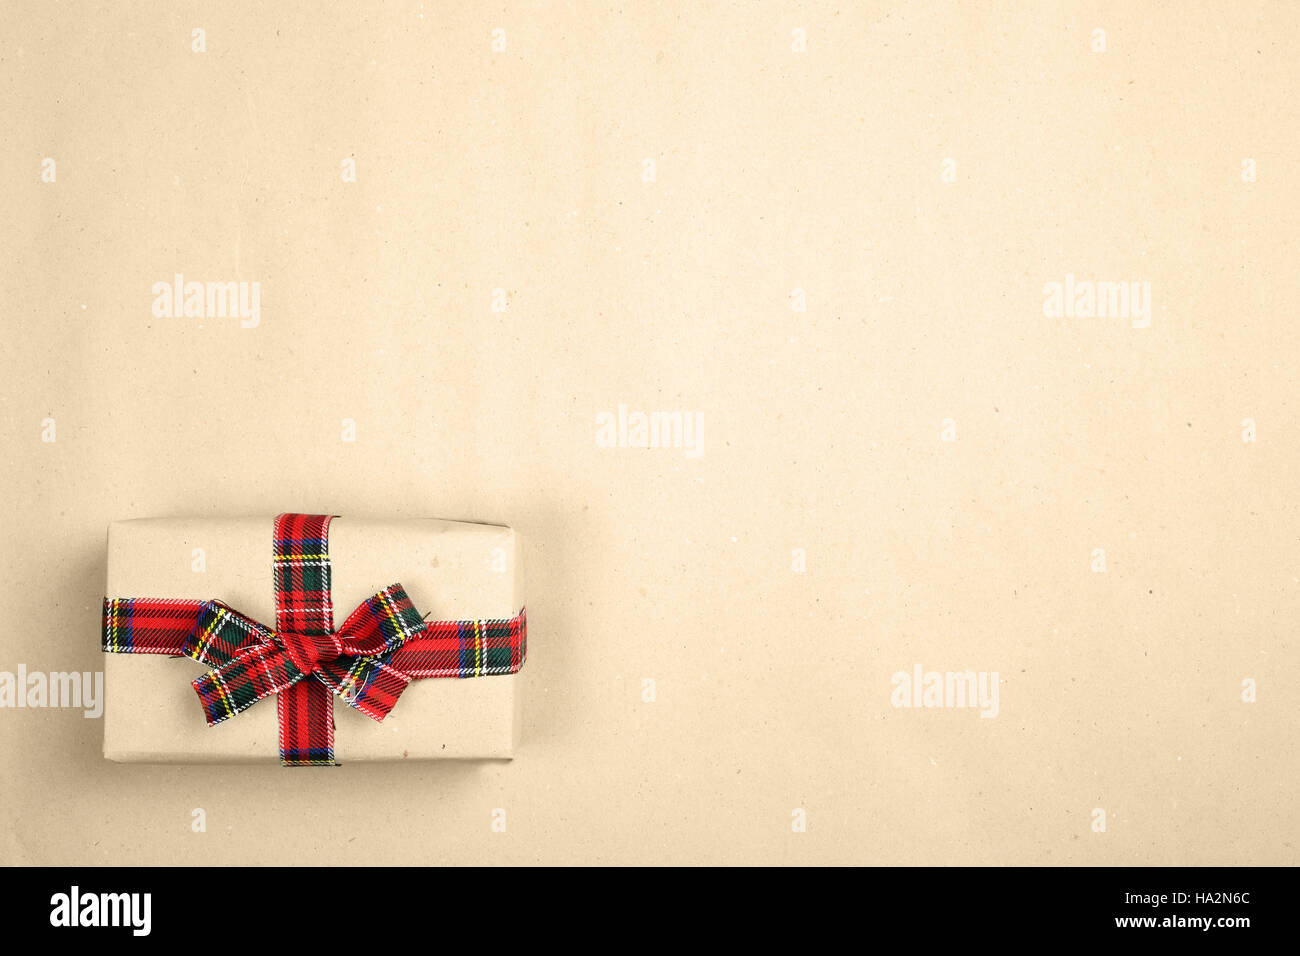 Hipster Christmas Gift Box On Paper Background With Red Cloth Bow